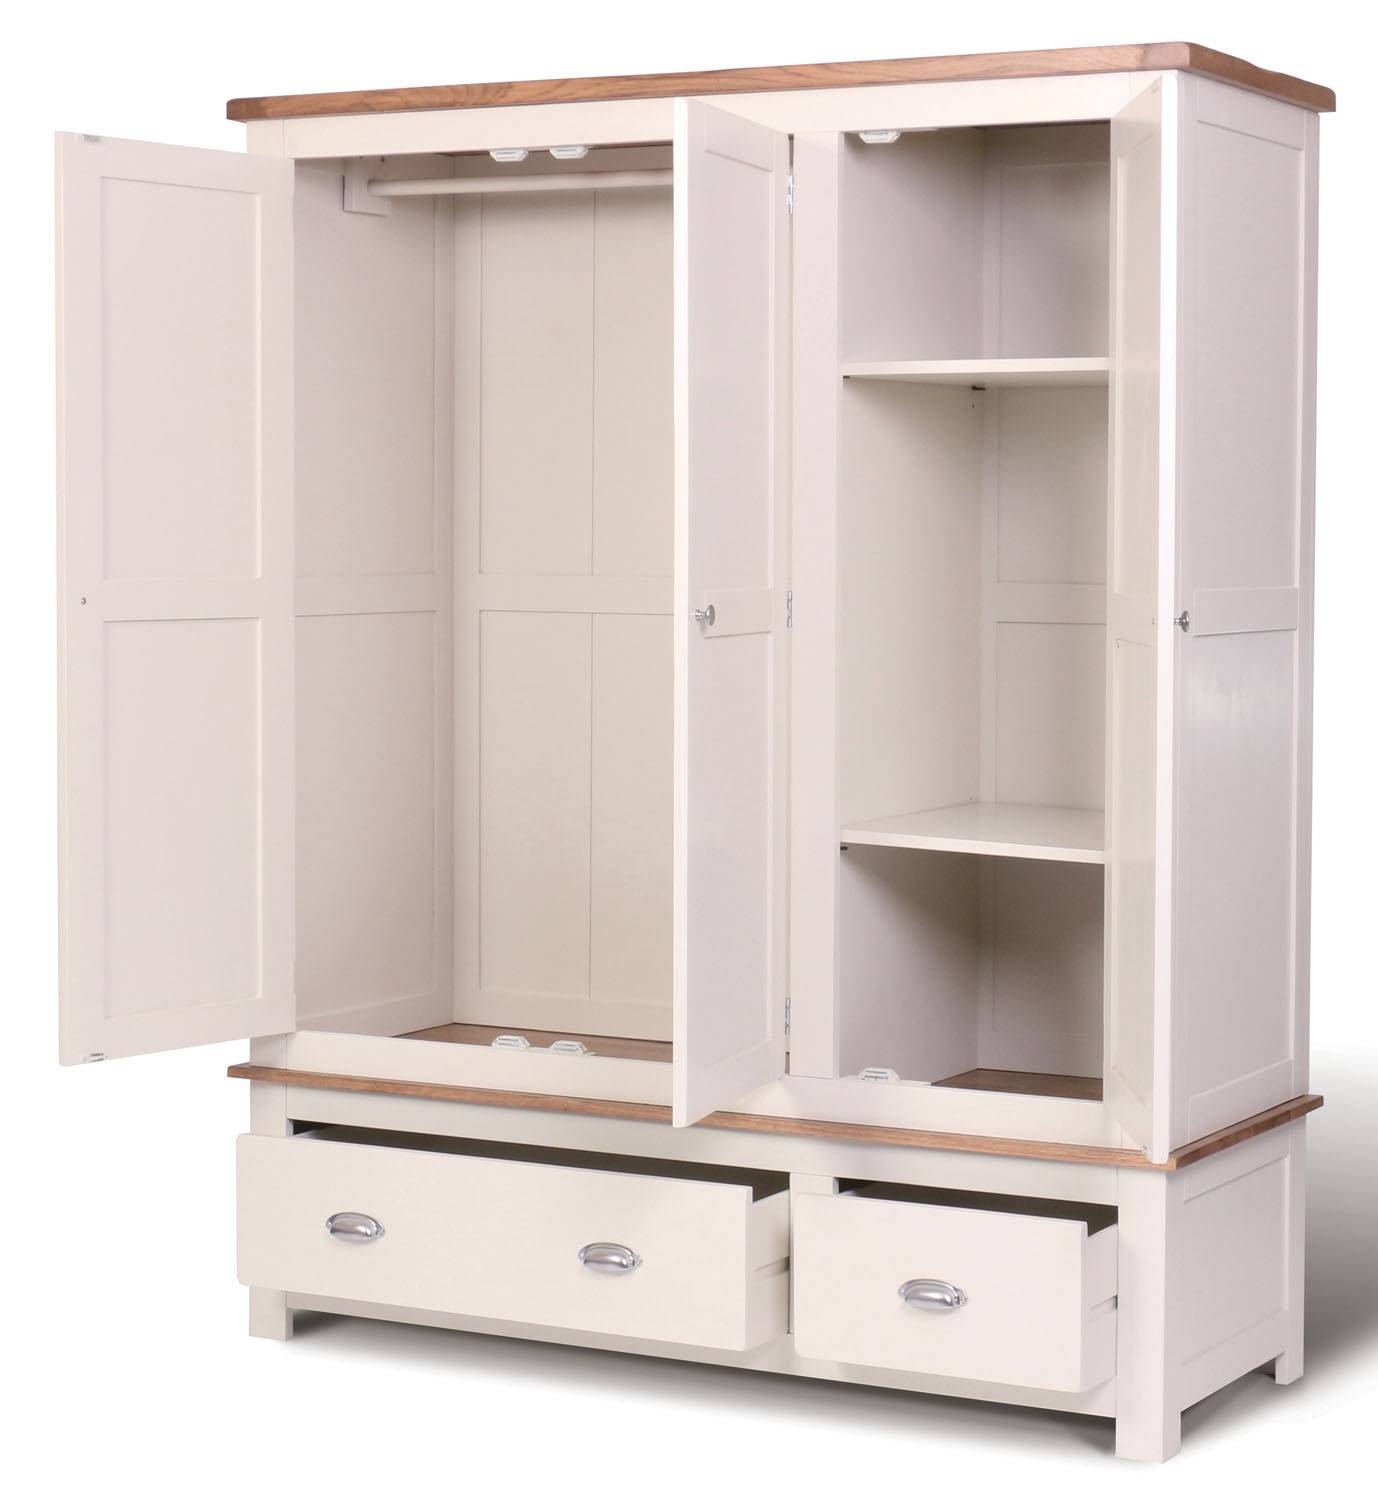 Ascot Triple Wardrobe With Drawers – Wardrobes – Bedroom | Hallowood Within Wardrobe With Drawers And Shelves (View 13 of 30)